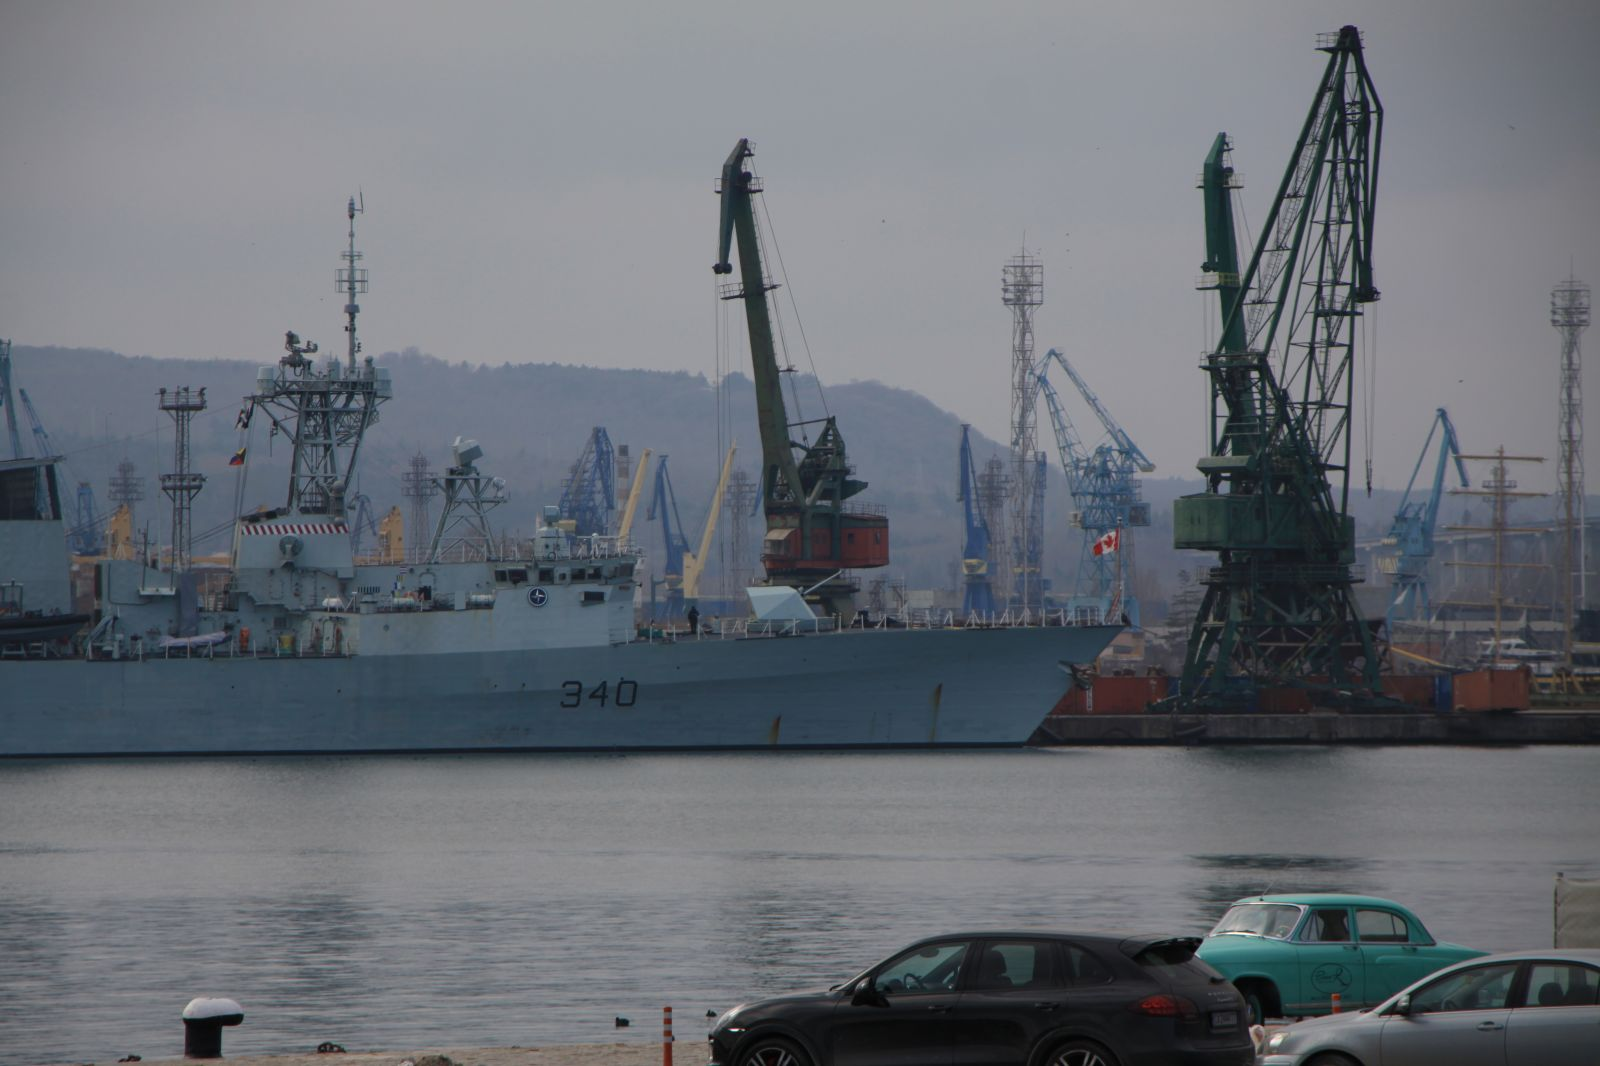 NATO Ships from SNMG2 arrive in Varna, Bulgaria for PASSEX 2017 Exercise (photo feature)